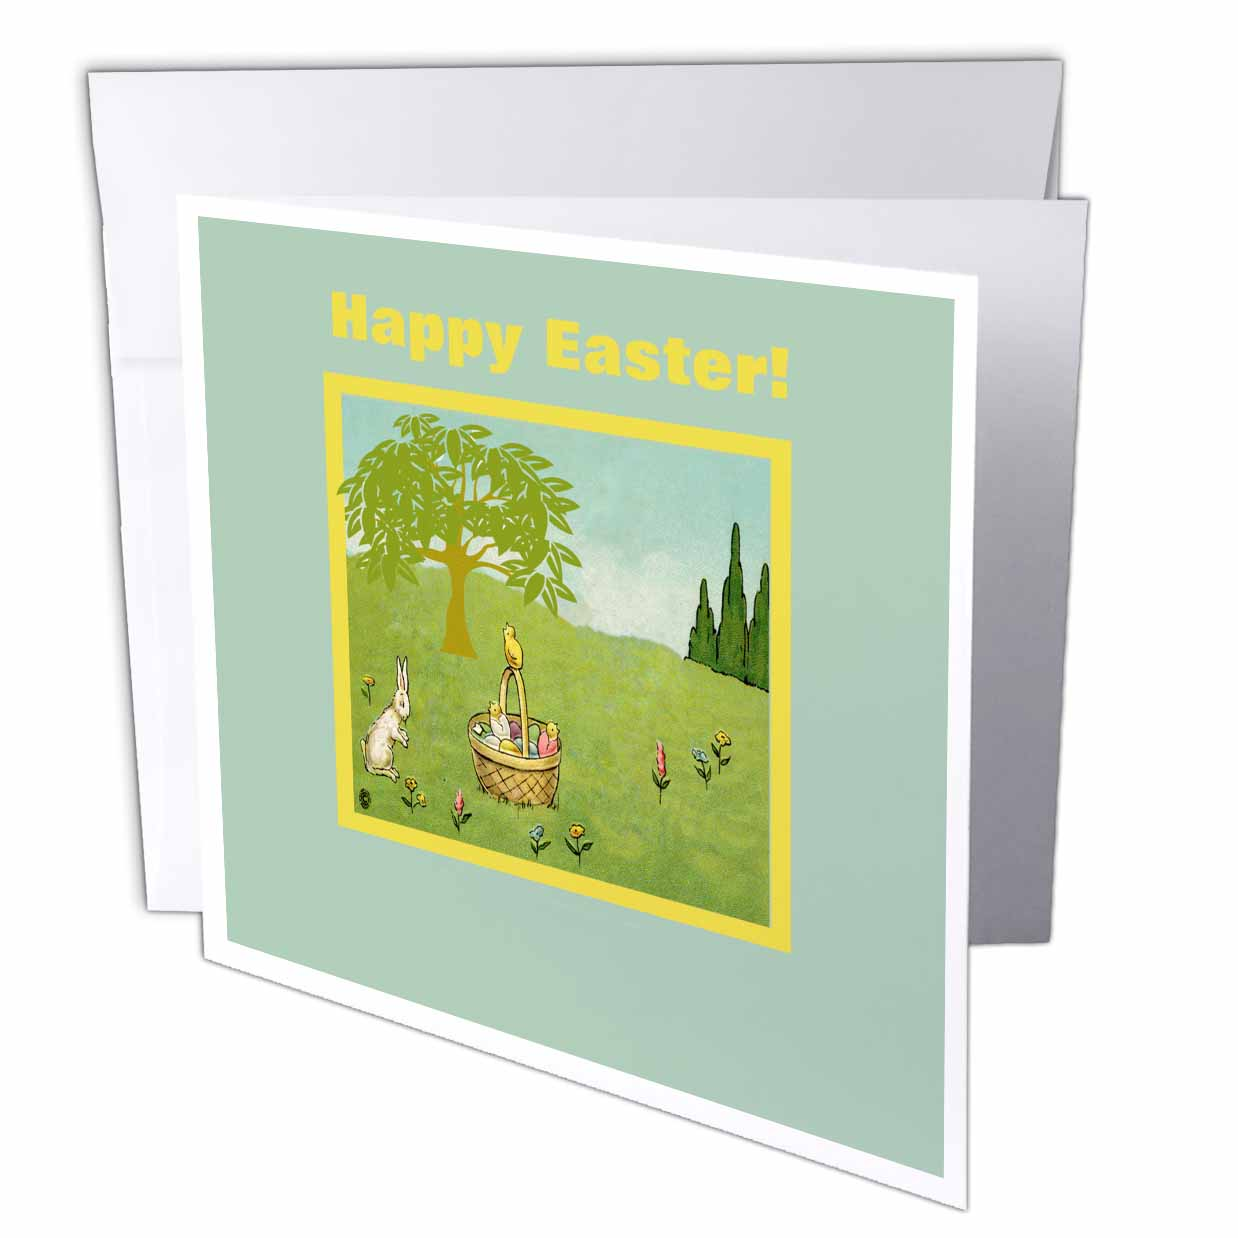 3dRose Bunny Rabbit and Chicks with Easter Baskets with Eggs, Happy Easter, Greeting Cards, 6 x 6 inches, set of 12